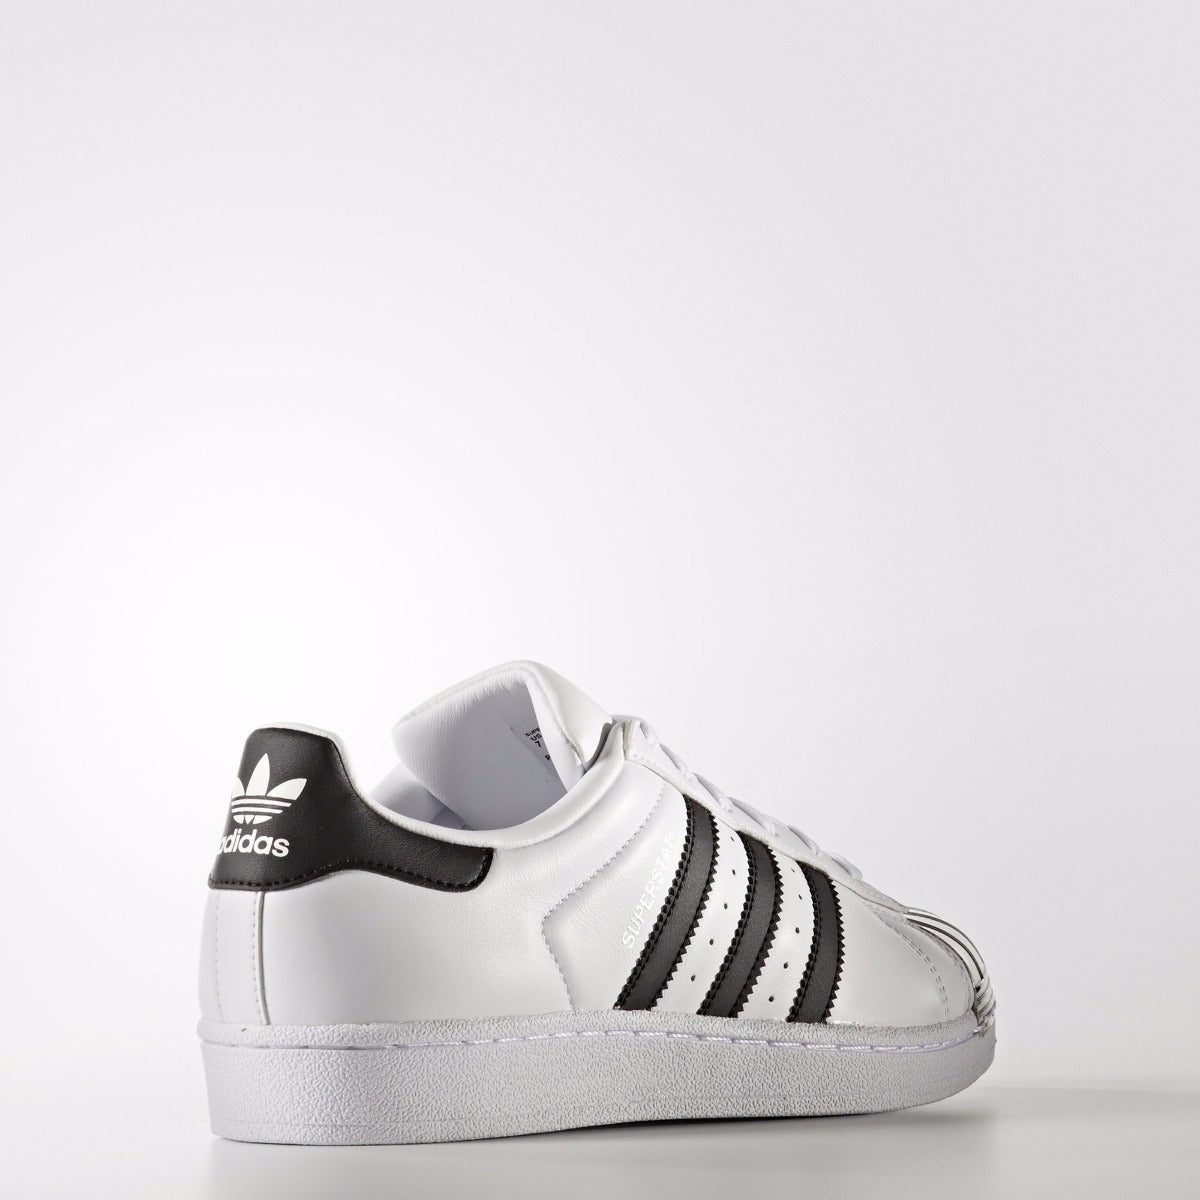 new concept e737d 709fa Women s adidas Originals Superstar 80s Shoes Metal Toe. 1